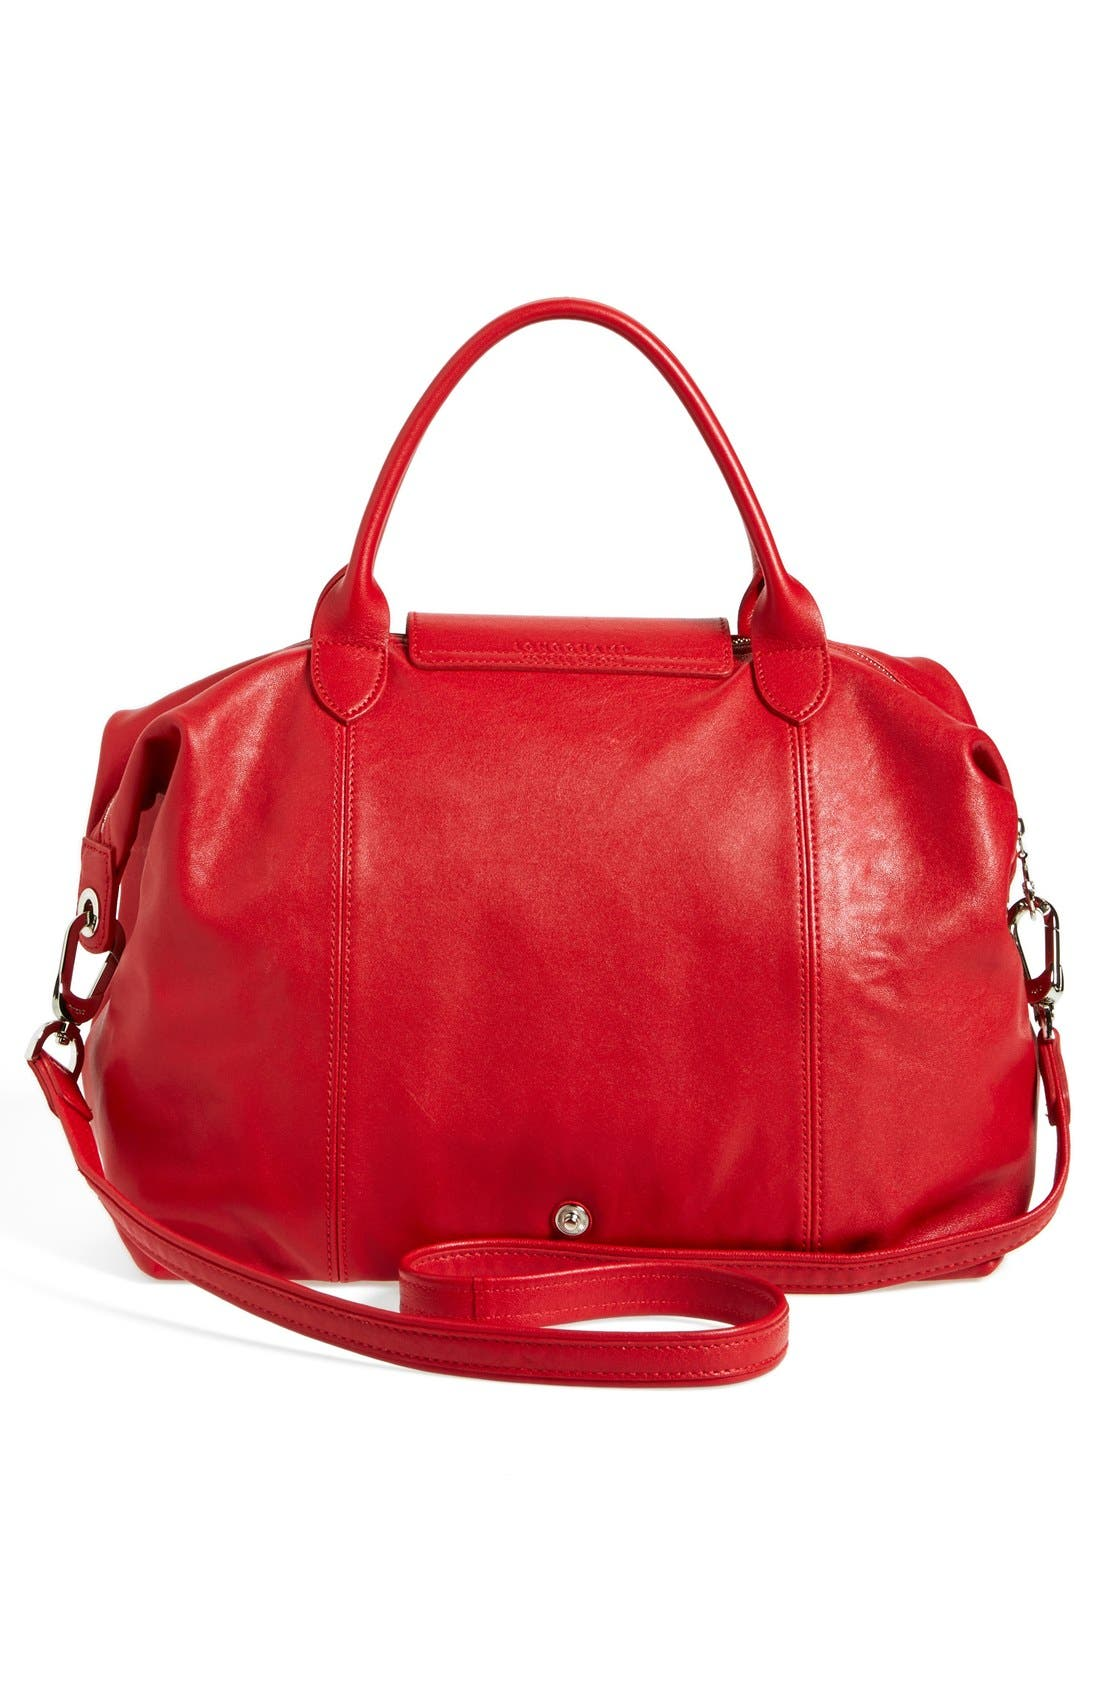 Medium 'Le Pliage Cuir' Leather Top Handle Tote,                             Alternate thumbnail 48, color,